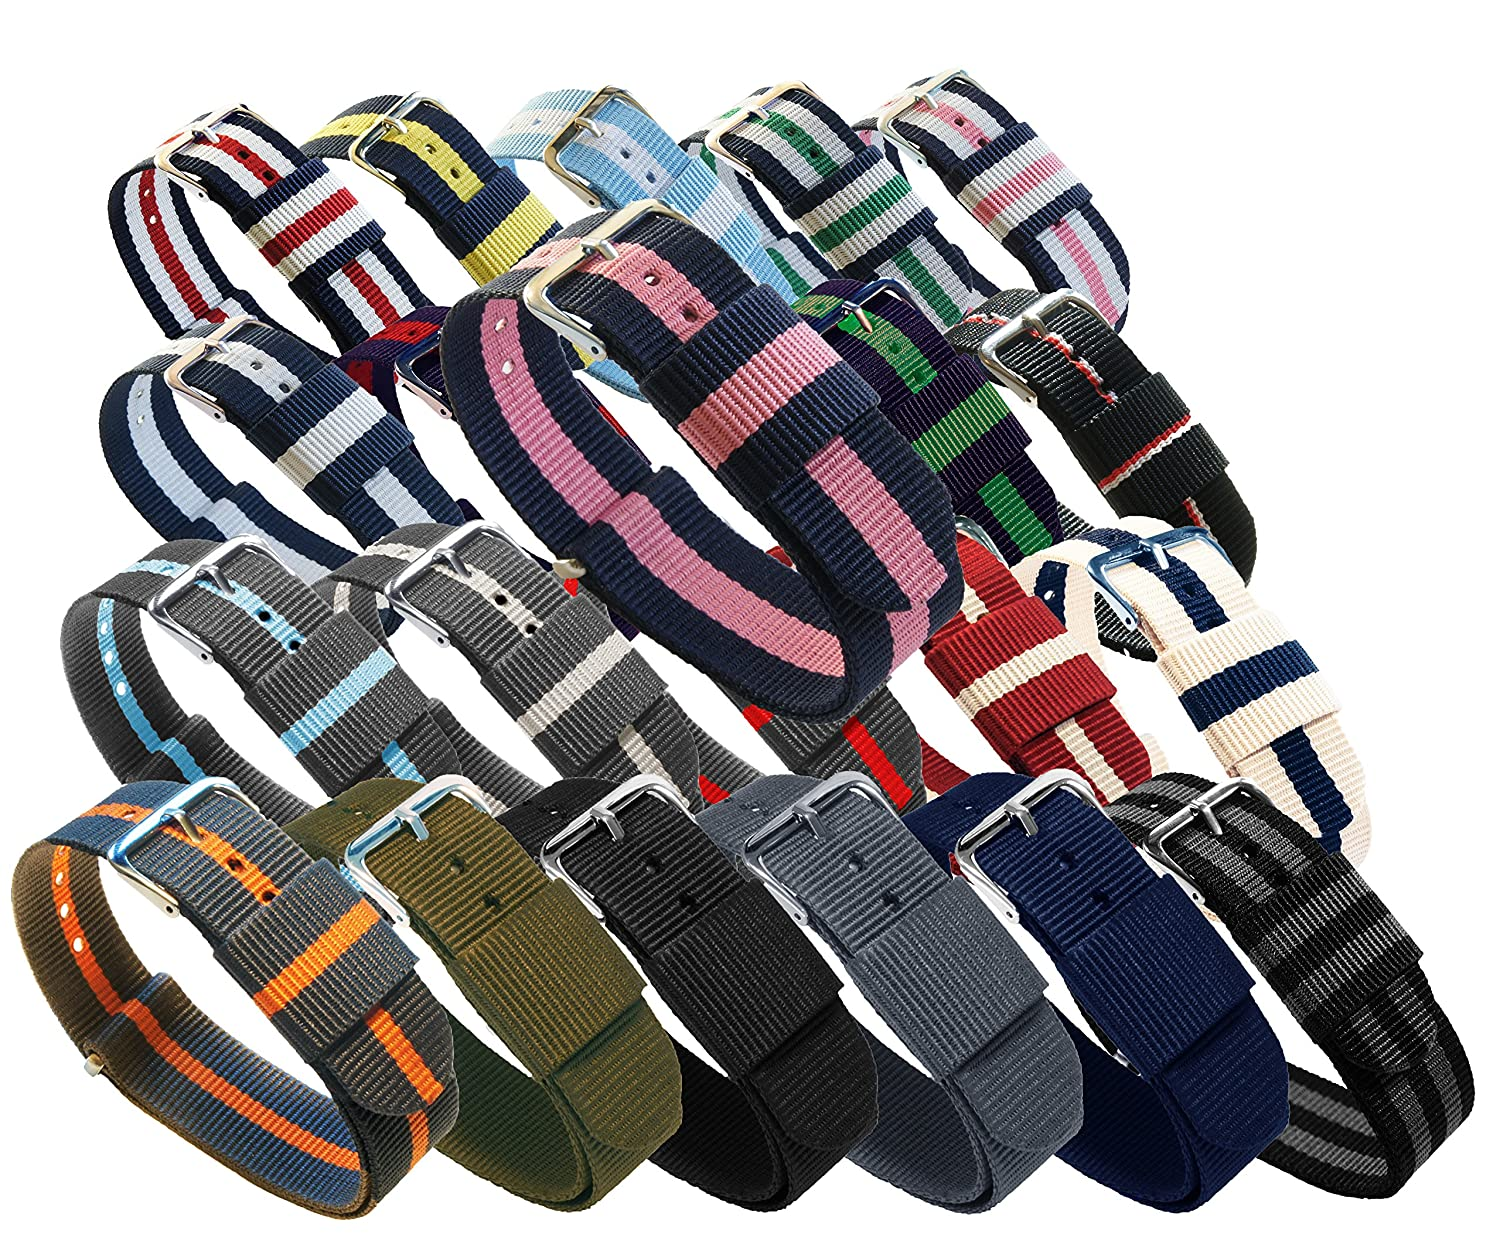 BARTON Watch Bands - Choice of Colors & Widths (18mm, 20mm or 22mm) - Ballistic Nylon, Stainless Steel